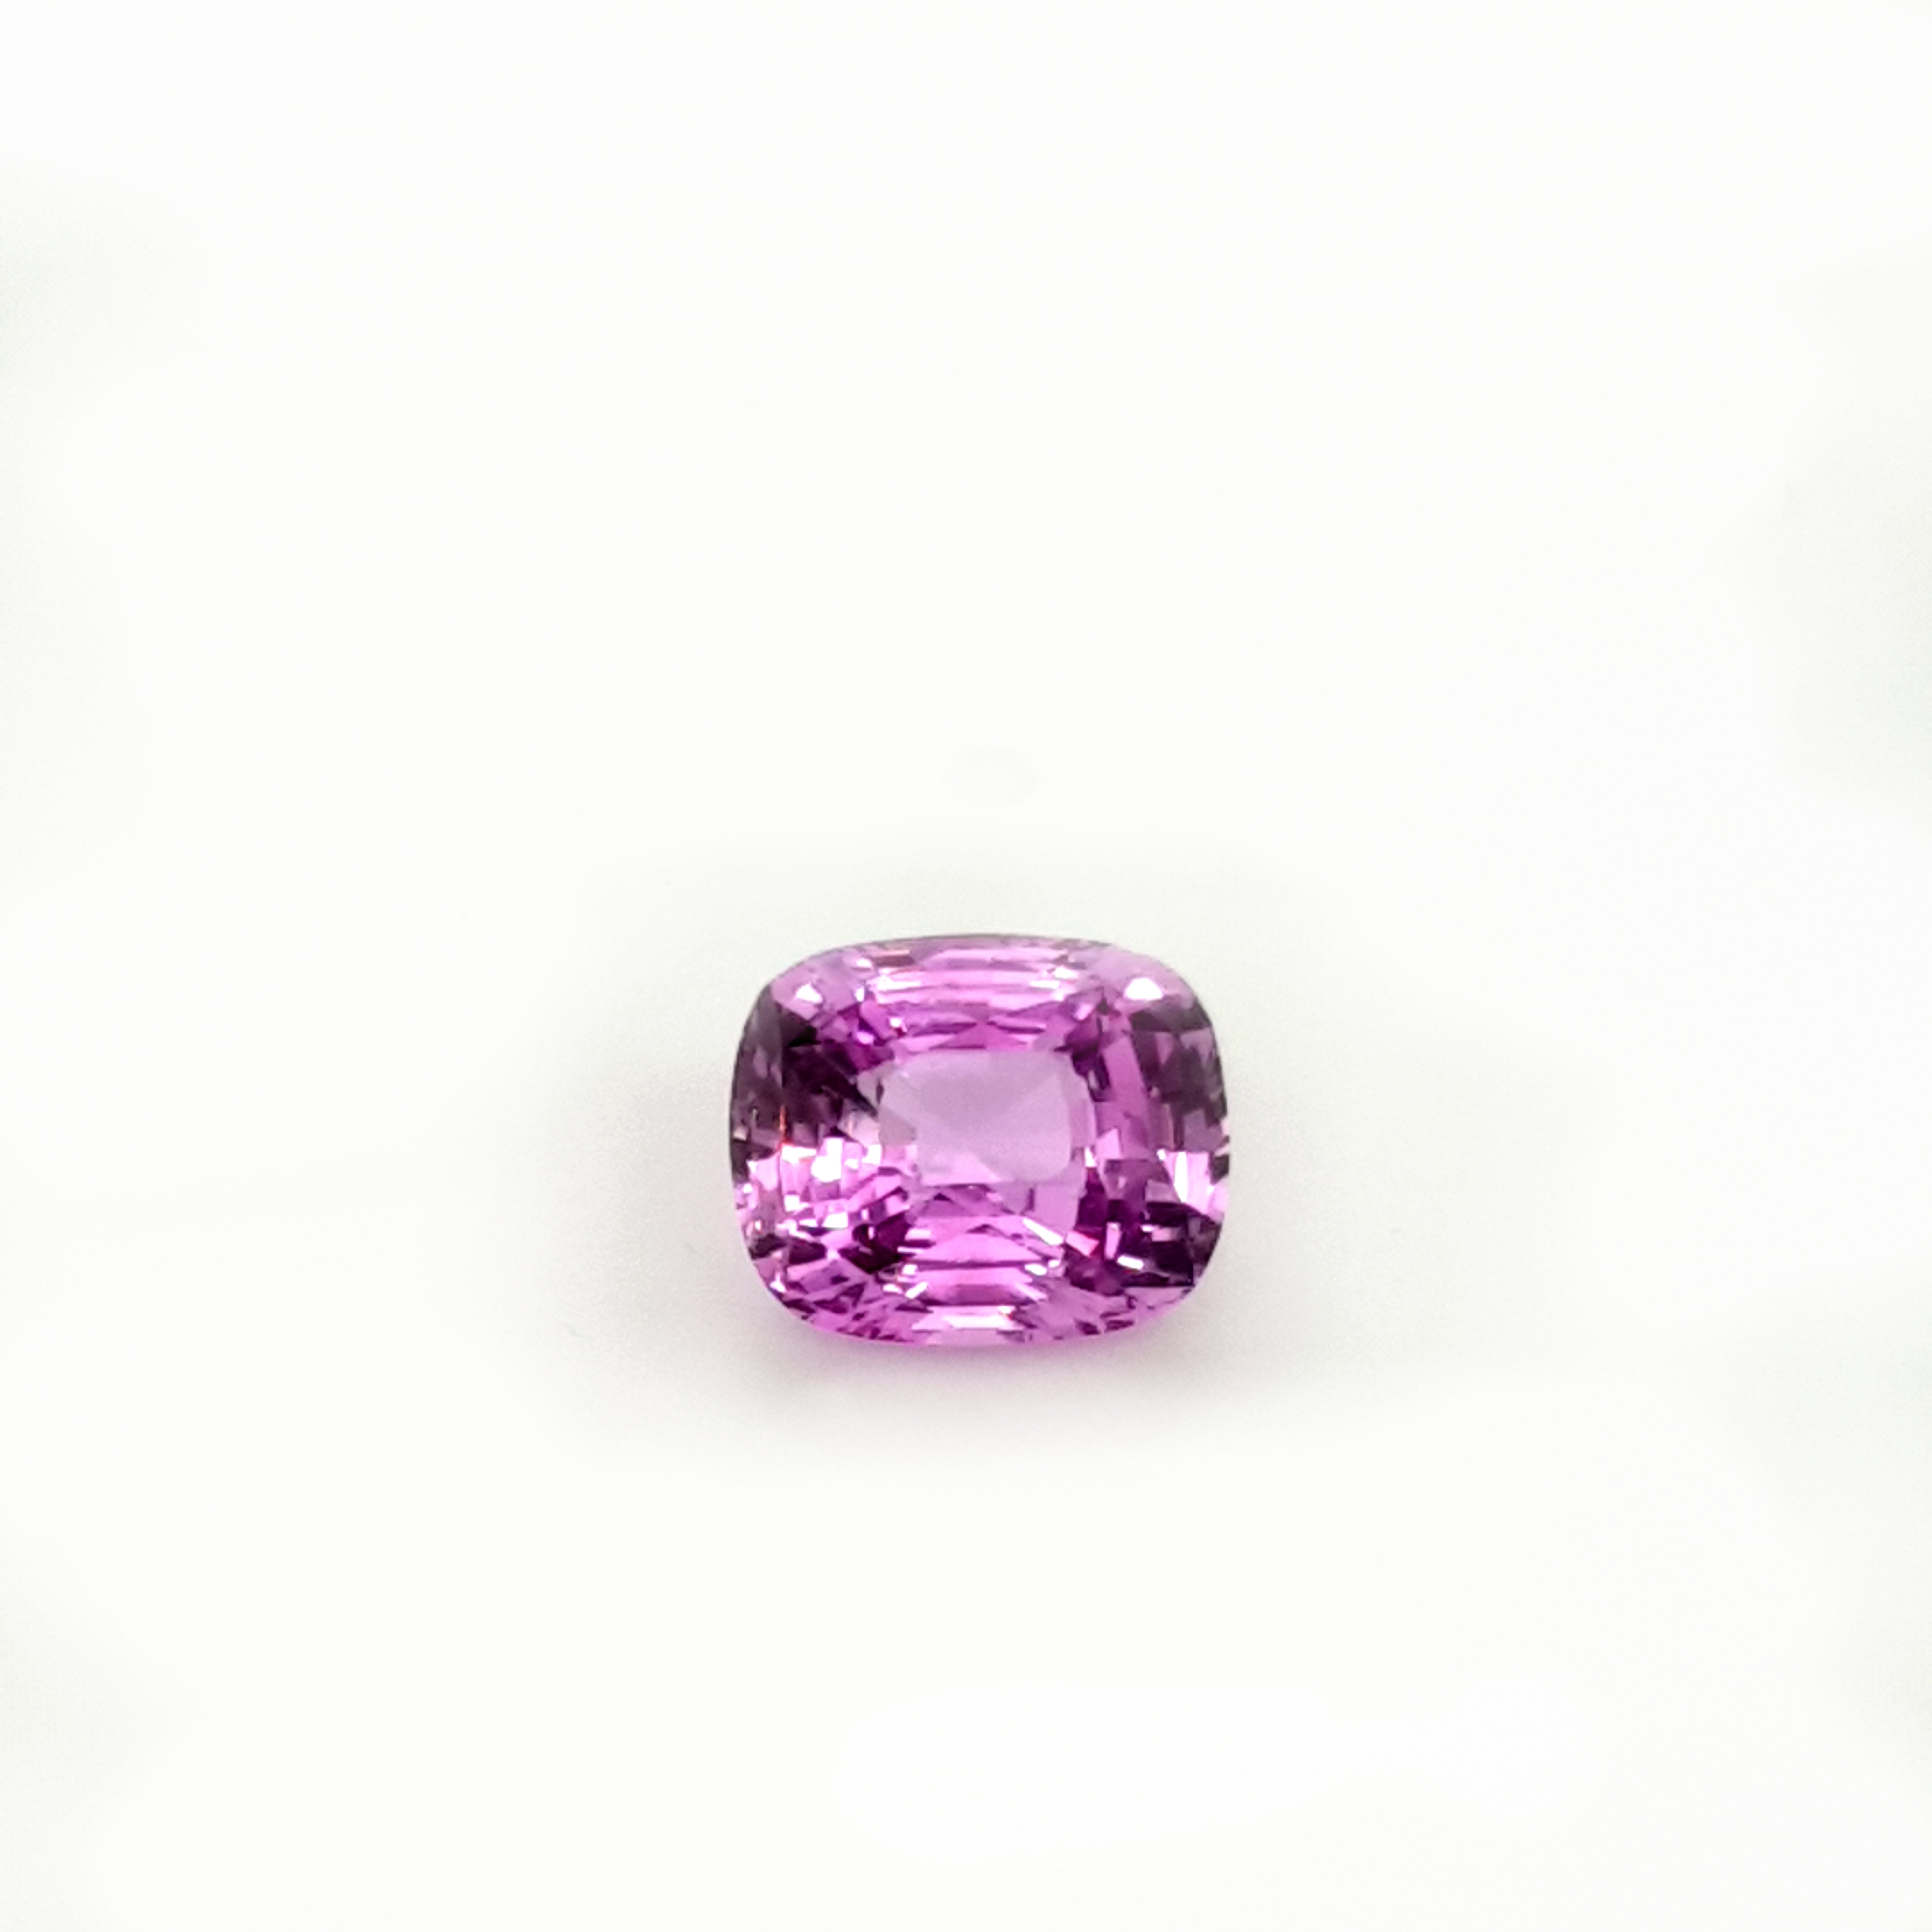 3,09ct. Pink Sapphire from Madagascar SFB17D5 ClaudiaHamann__2021-03-25-14-18-15